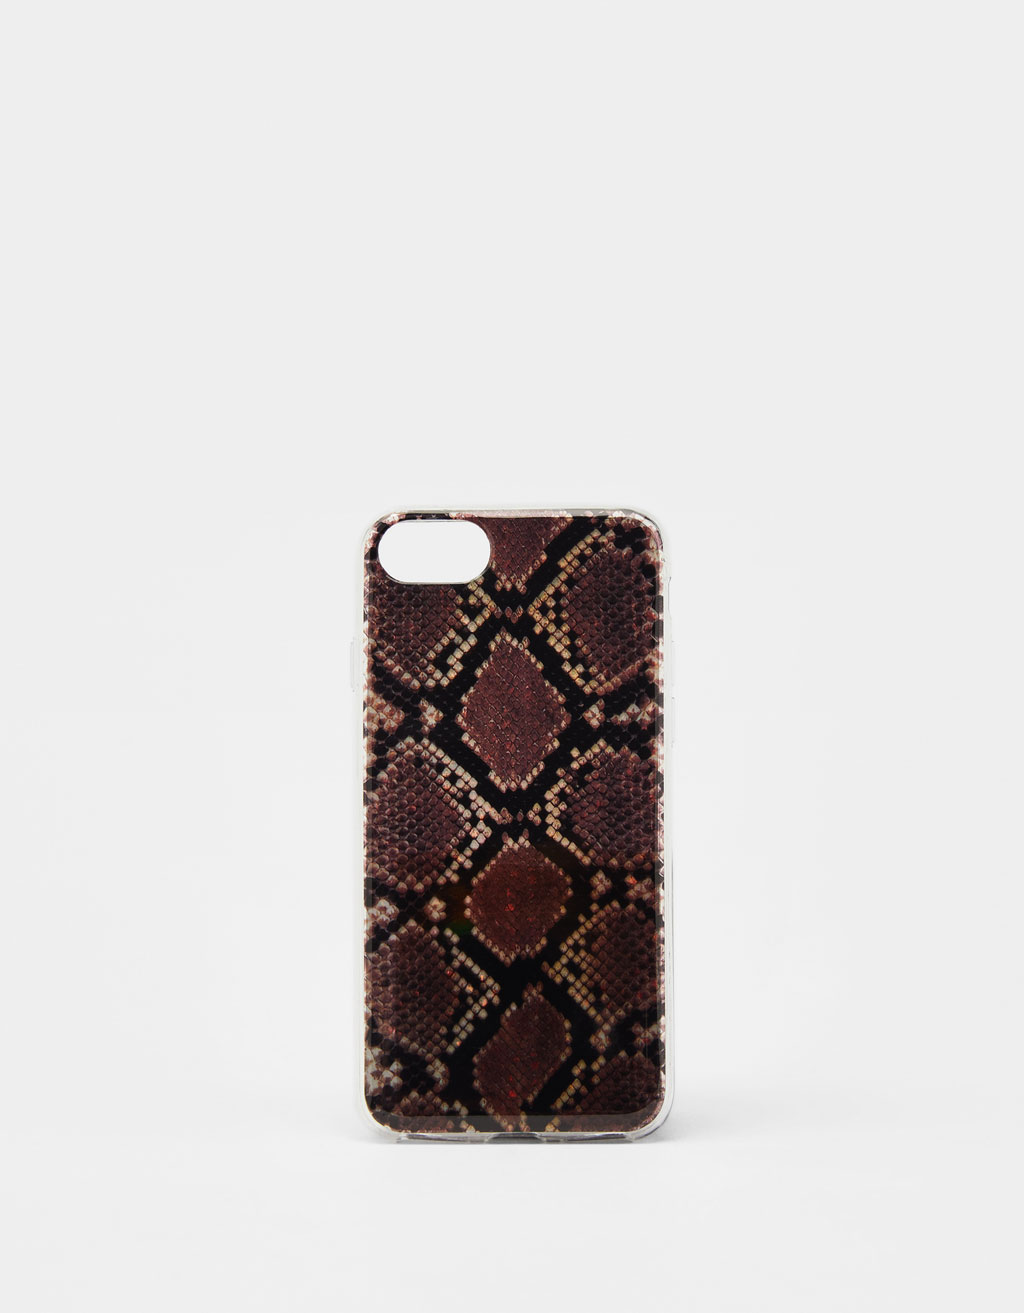 Carcassa serp iPhone 6/6s/7/8